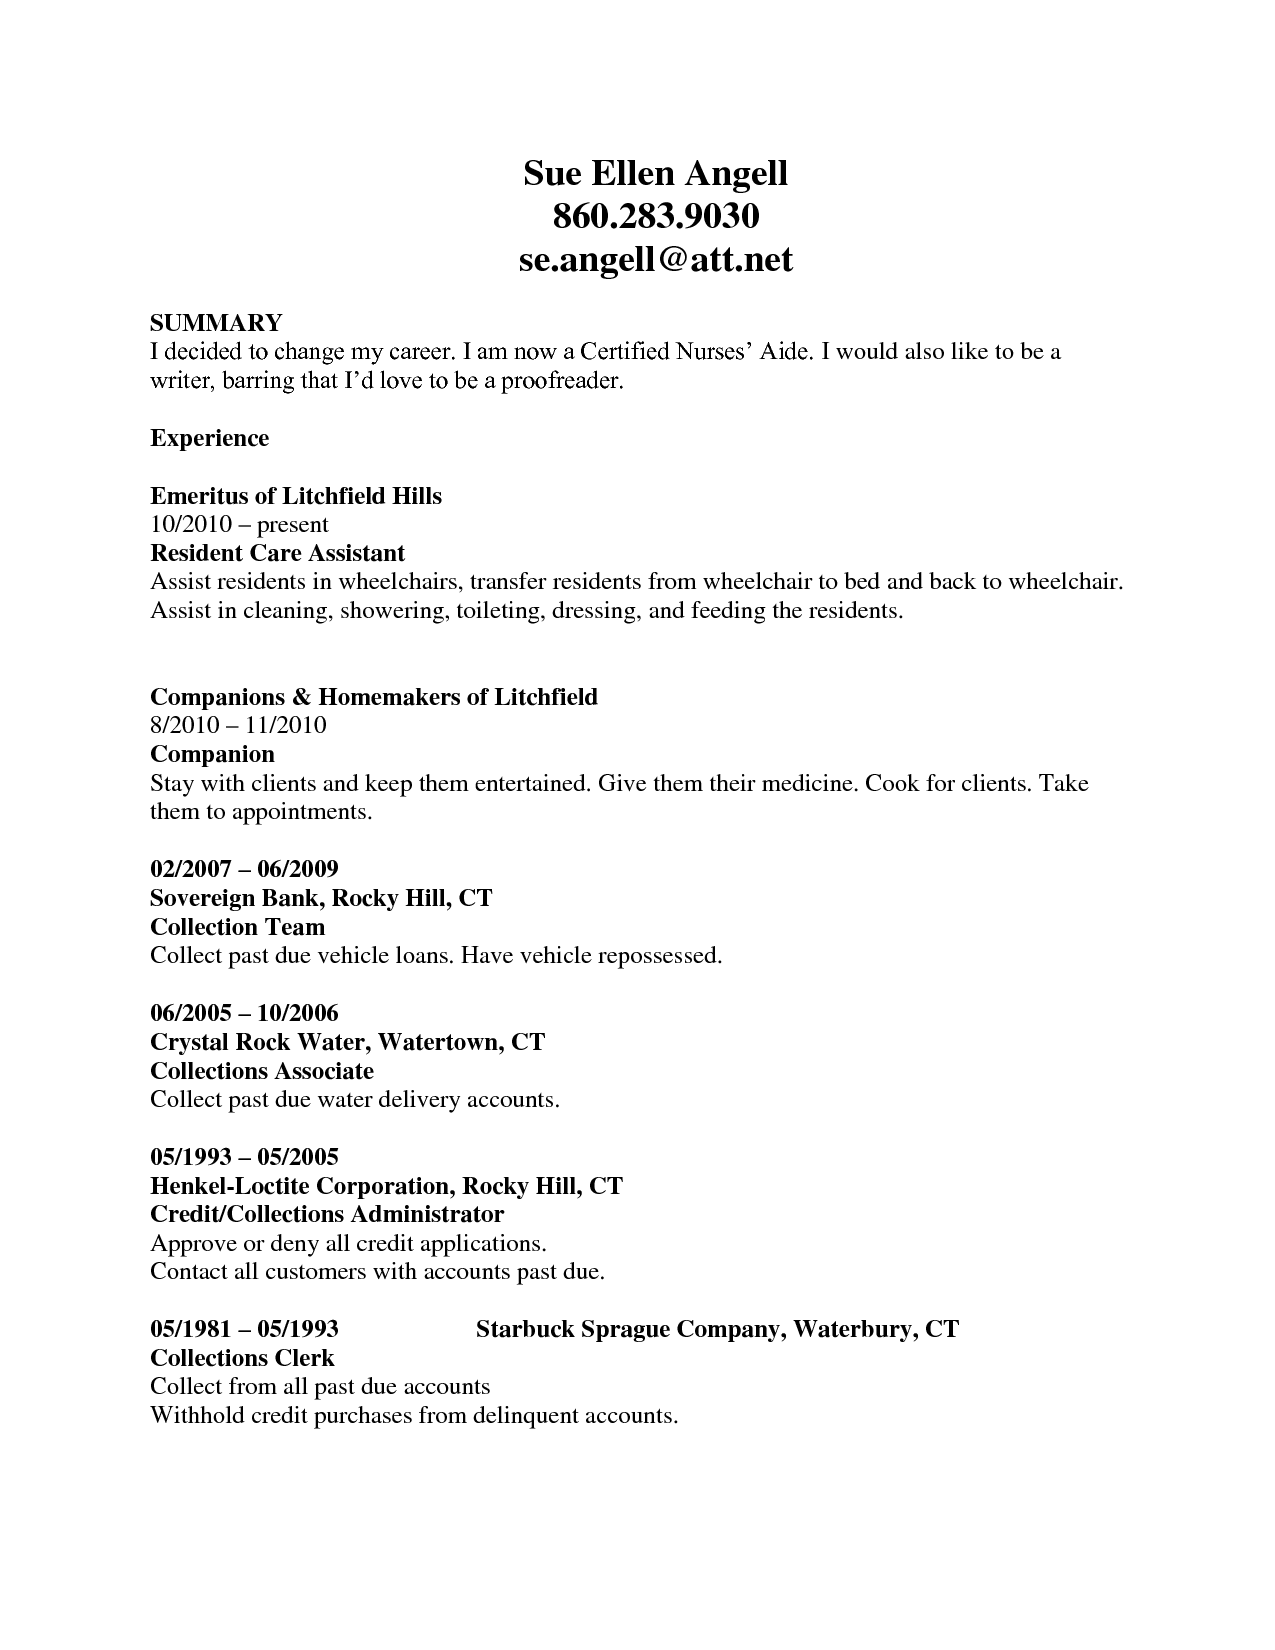 How To Write A Winning CNA Resume Objectives Skills Examples  Winning Resume Samples